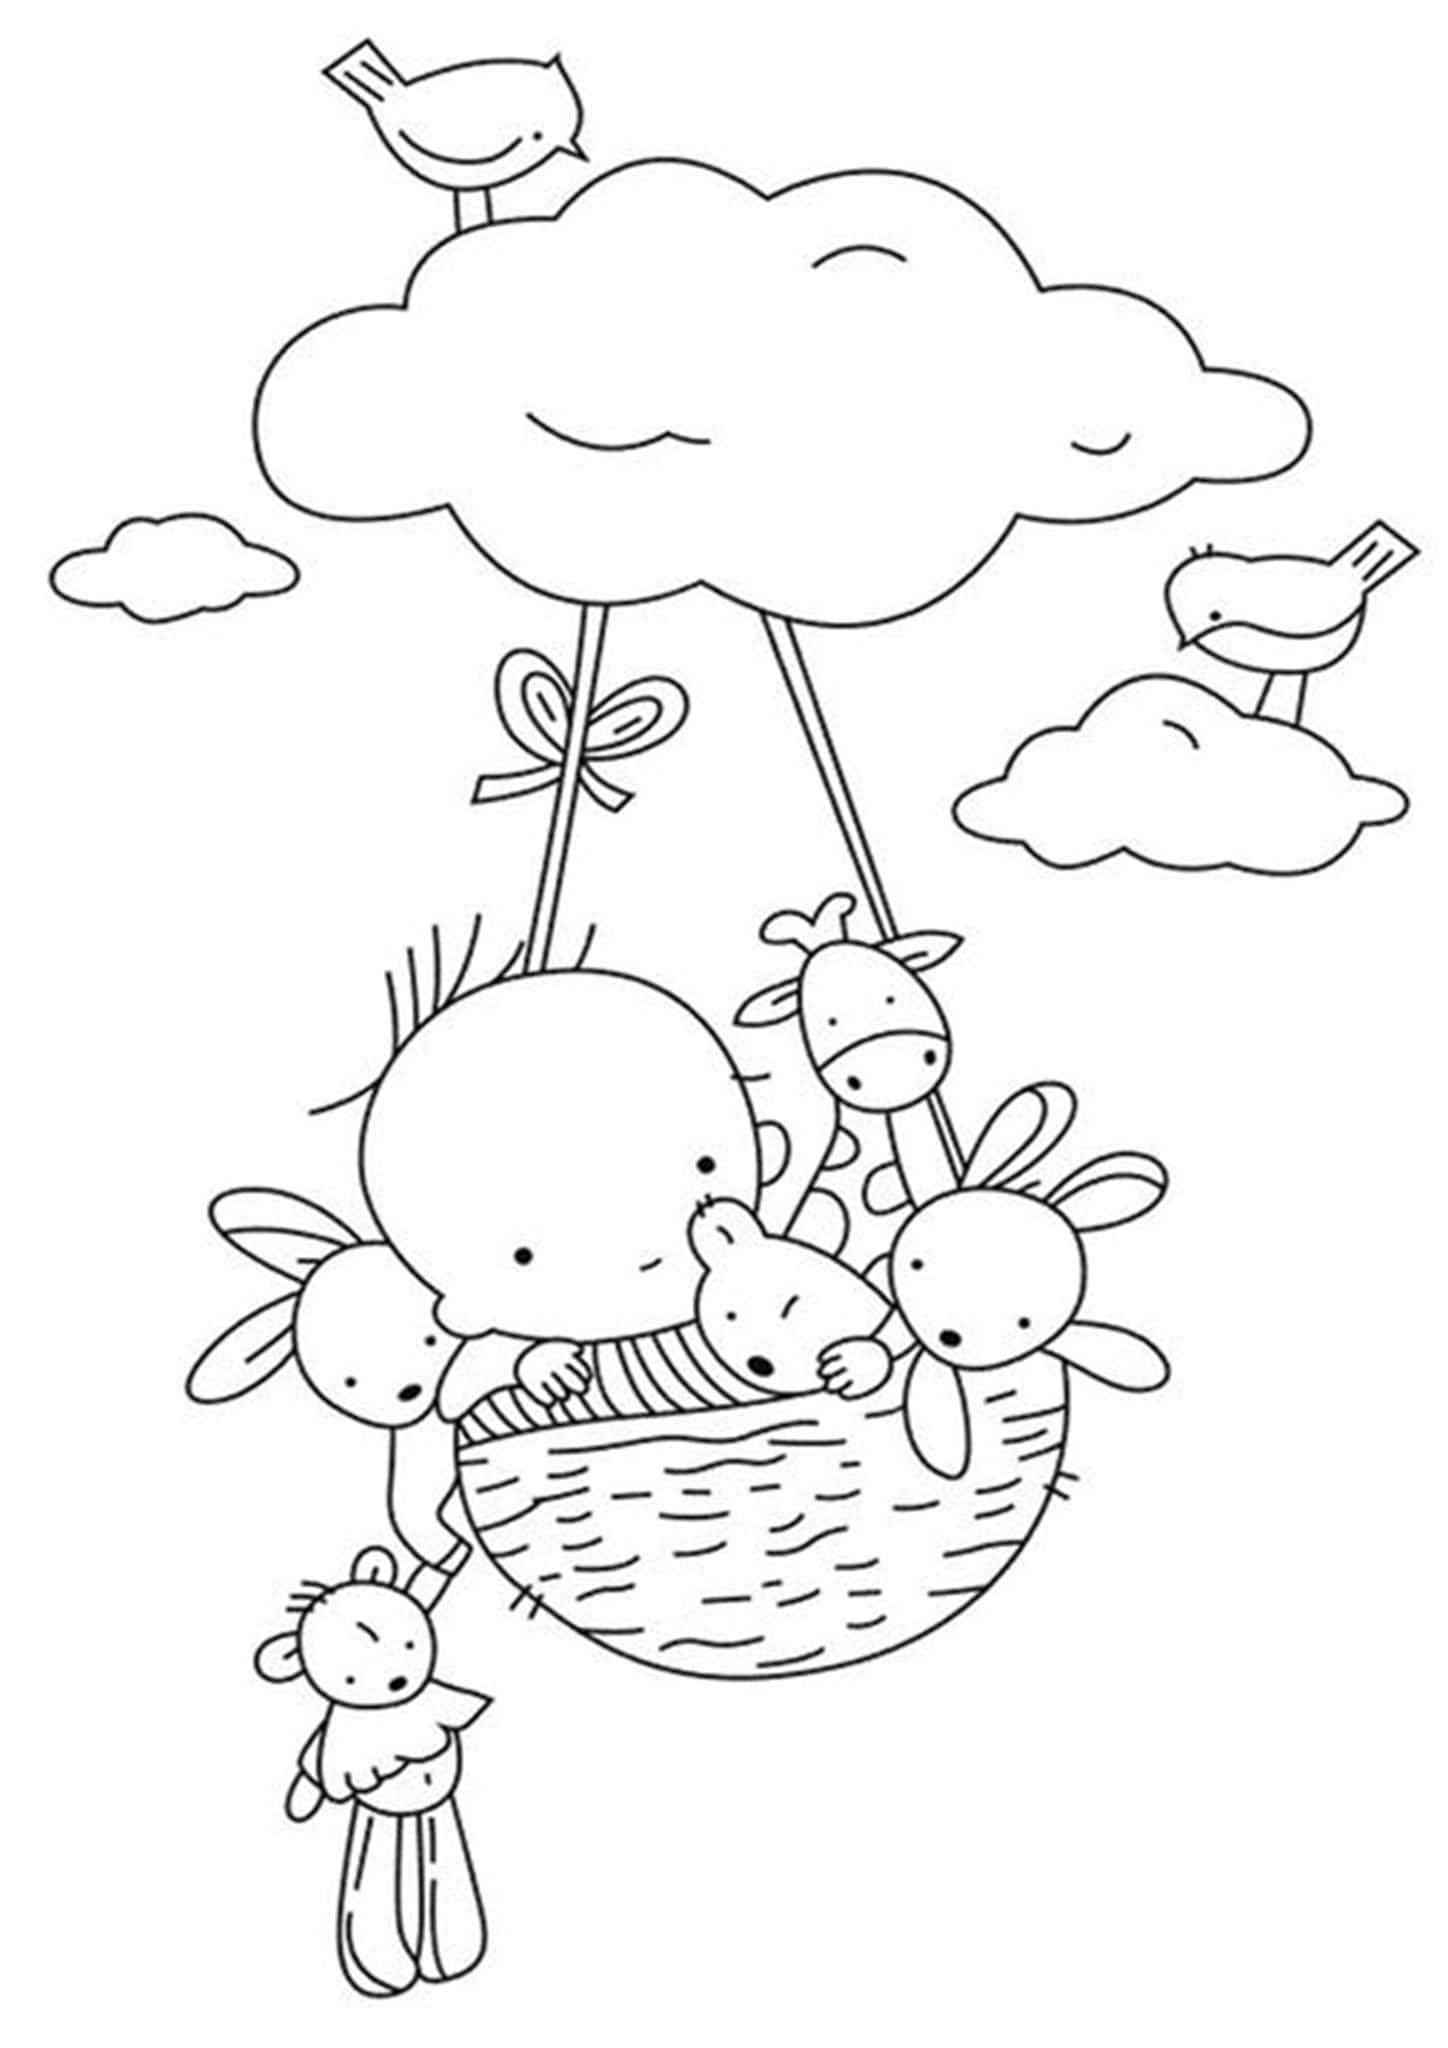 Free Easy To Print Baby Animal Coloring Pages Animal Coloring Pages Coloring Books Coloring Pages